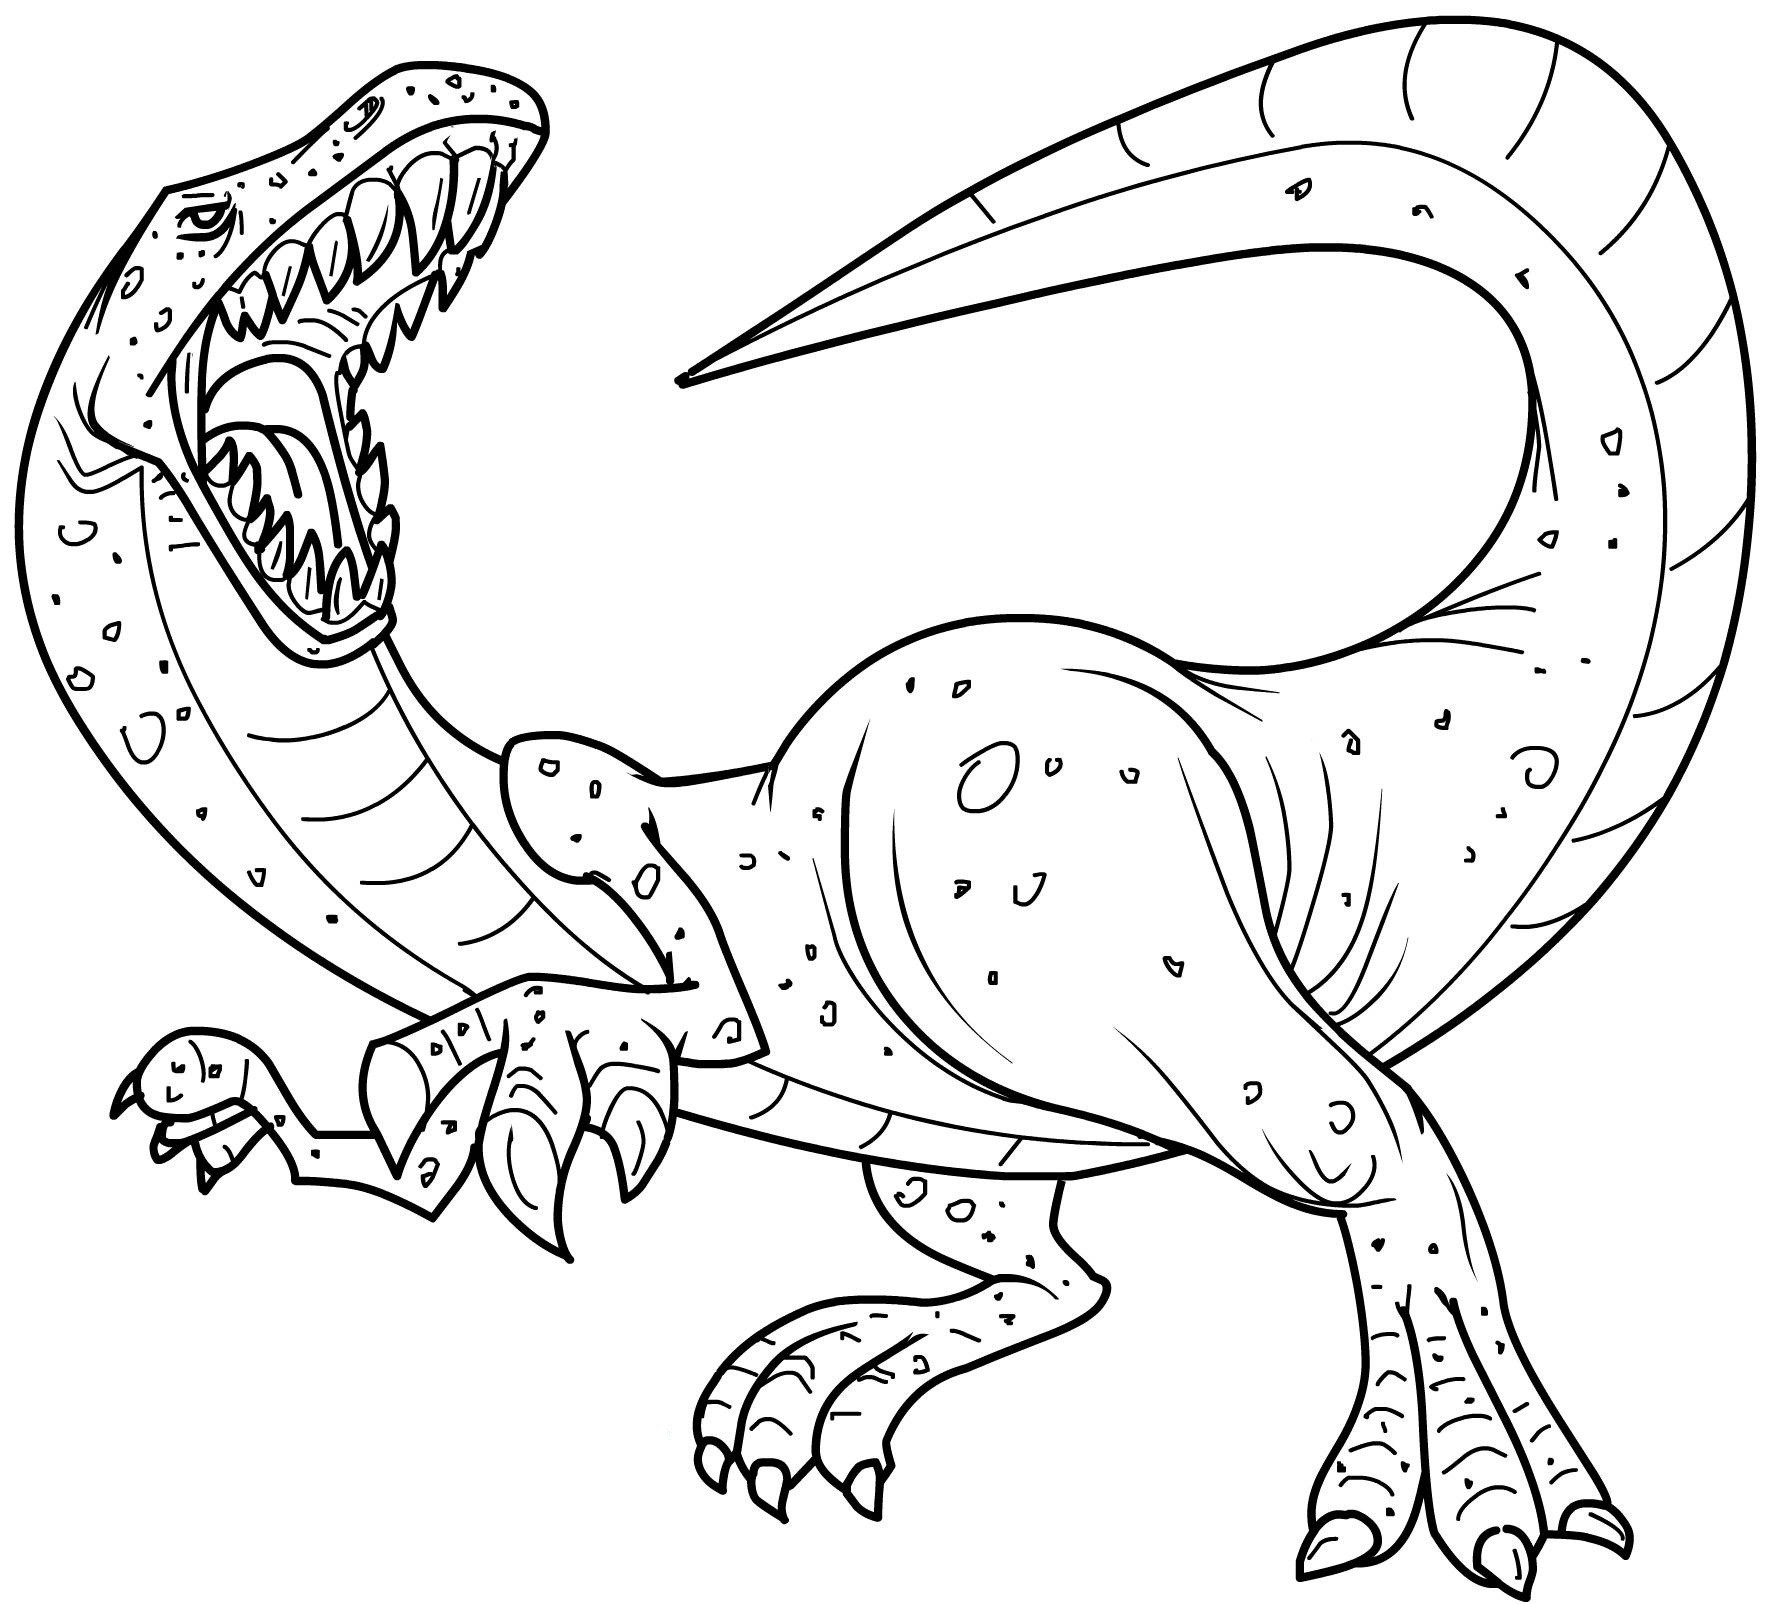 coloring dinosaur dinosaur colouring pages in the playroom dinosaur coloring